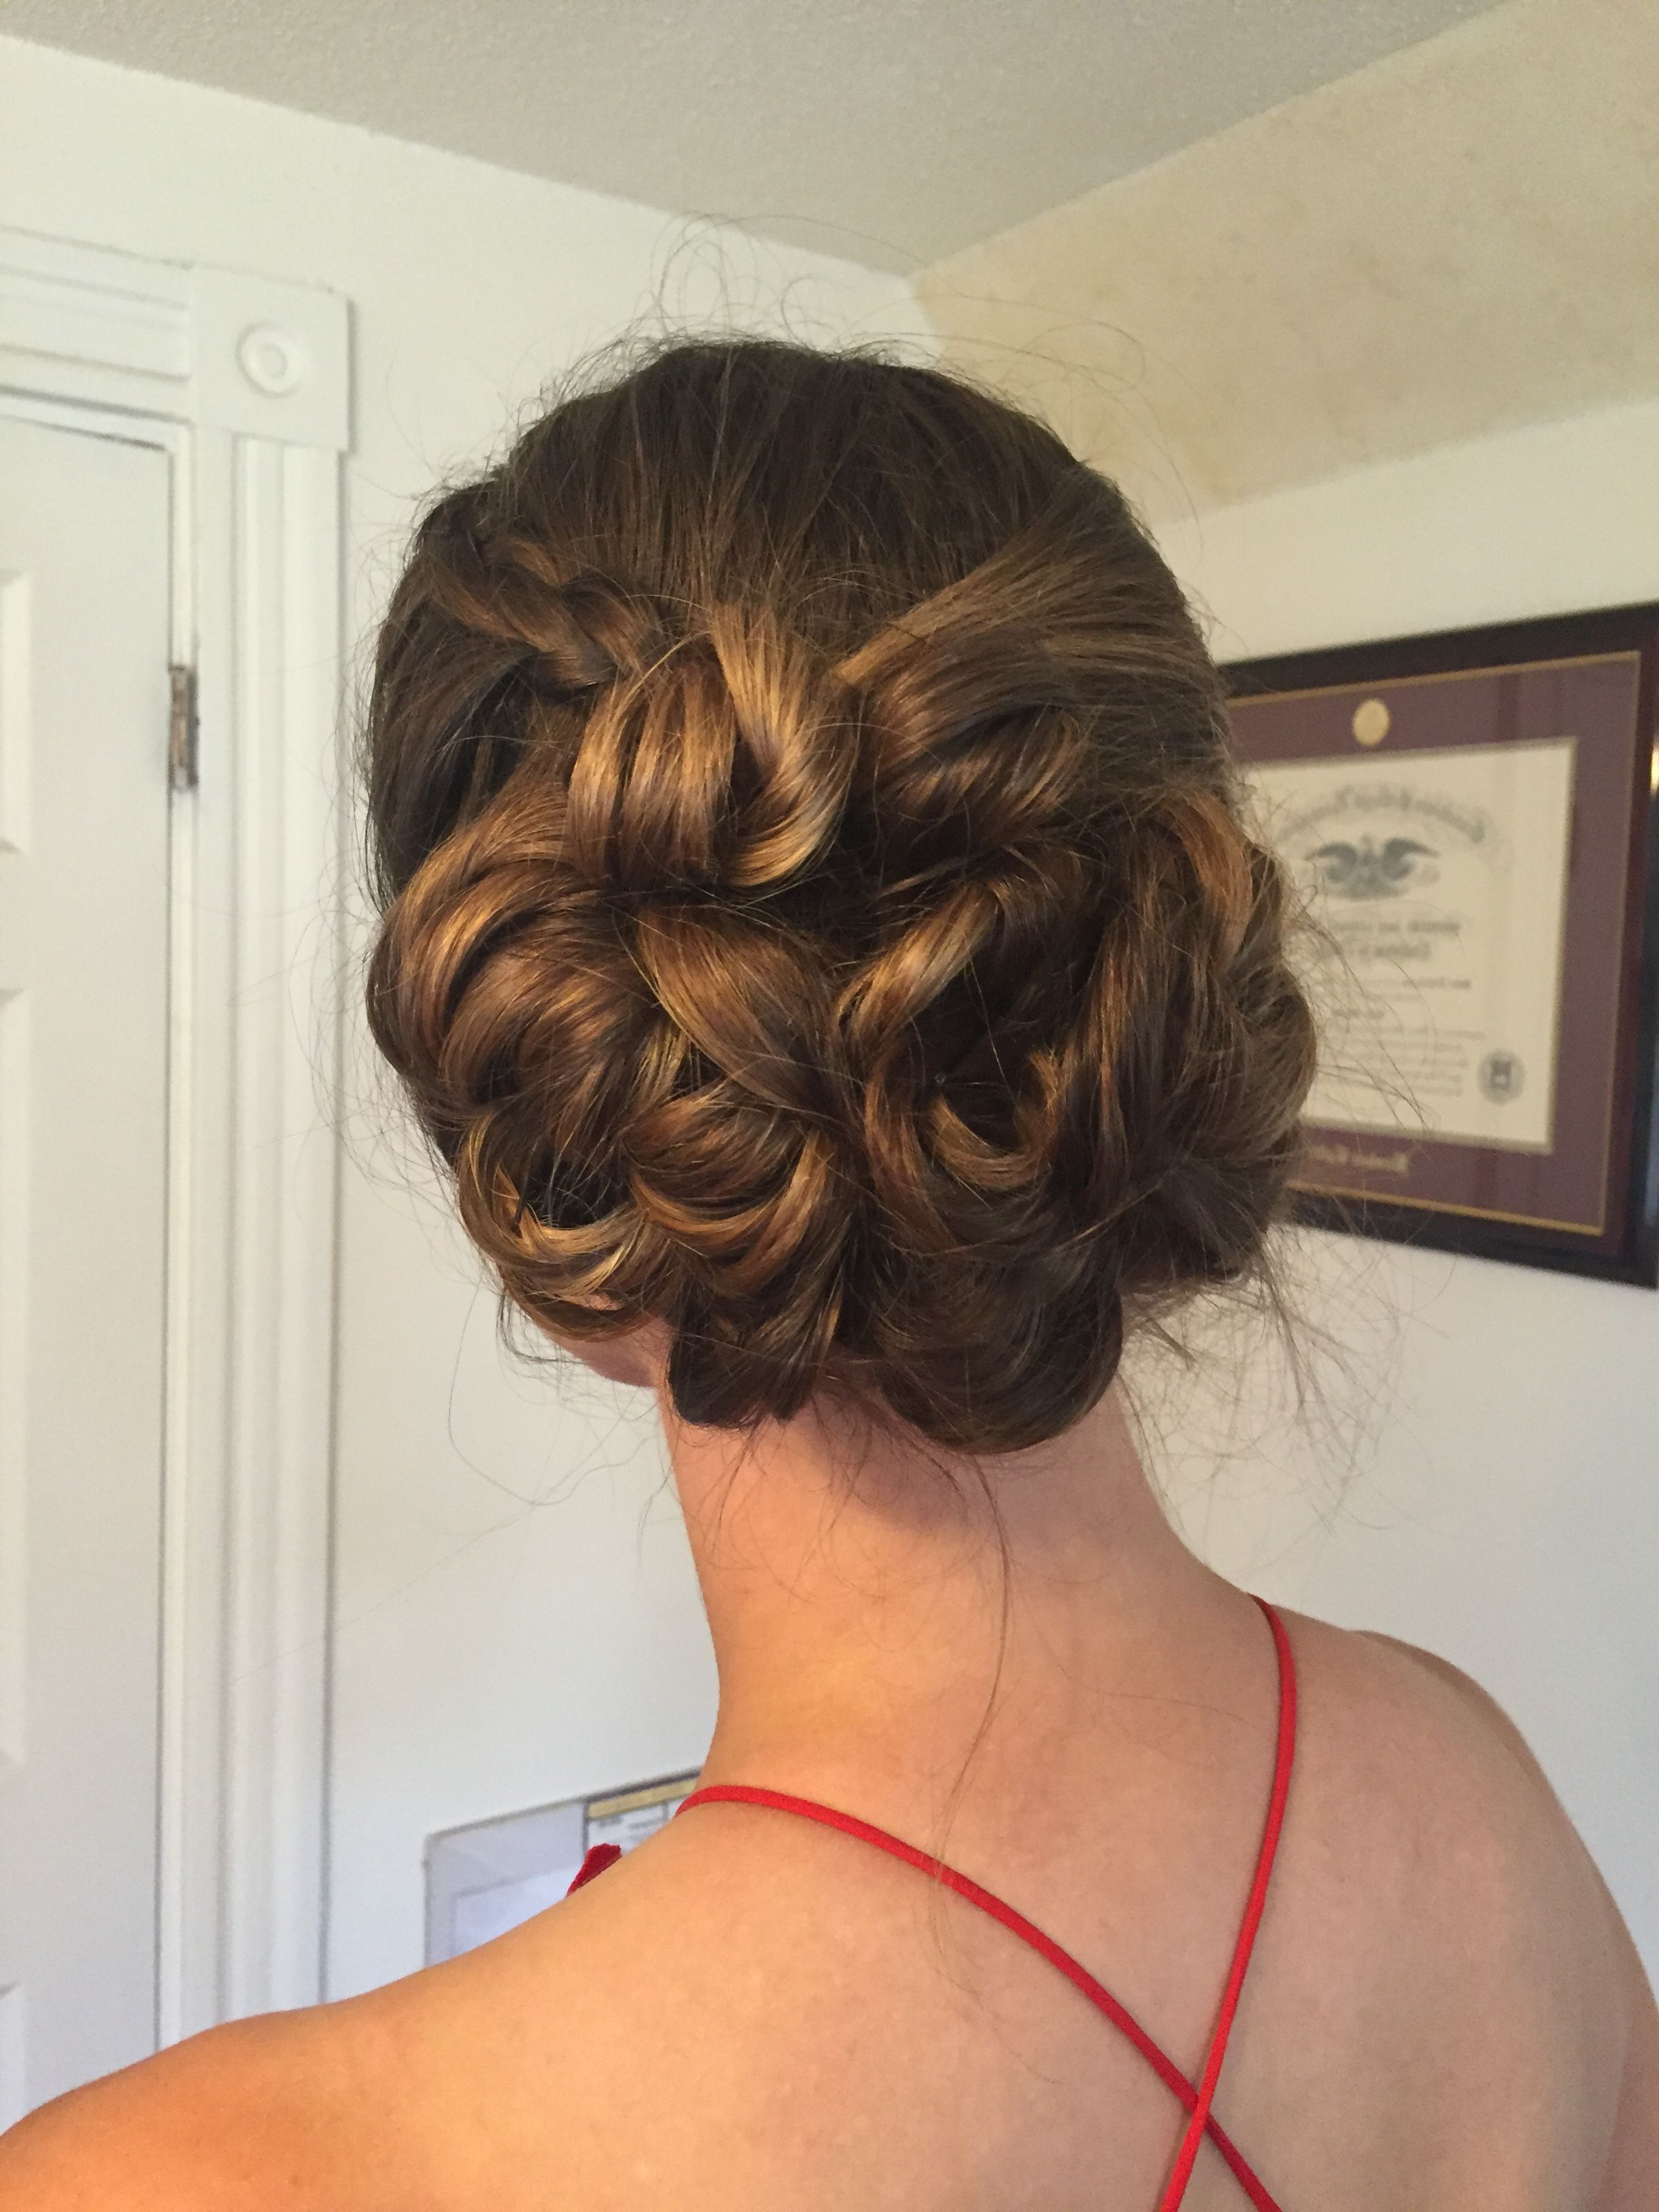 Well Known Braided Chignon Bun Hairstyles In Hairstyles : Chic Braided Chignon Fab Low Side Bun Updo For (Gallery 5 of 20)